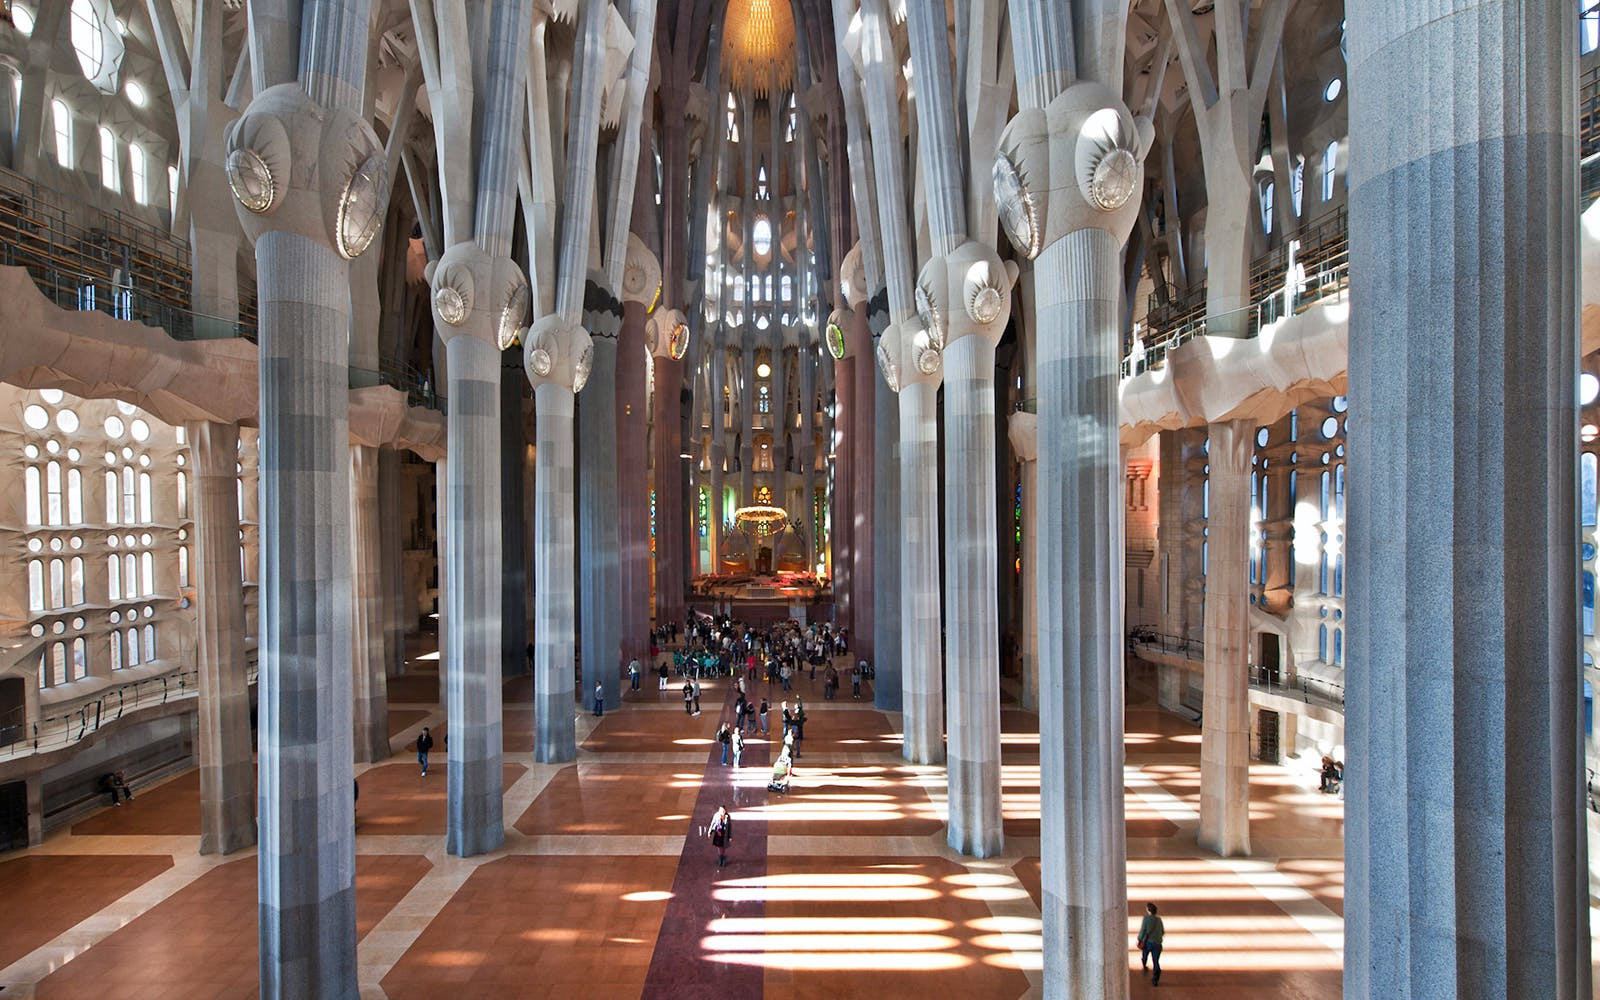 guided tour of sagrada familia with skip the line access-1